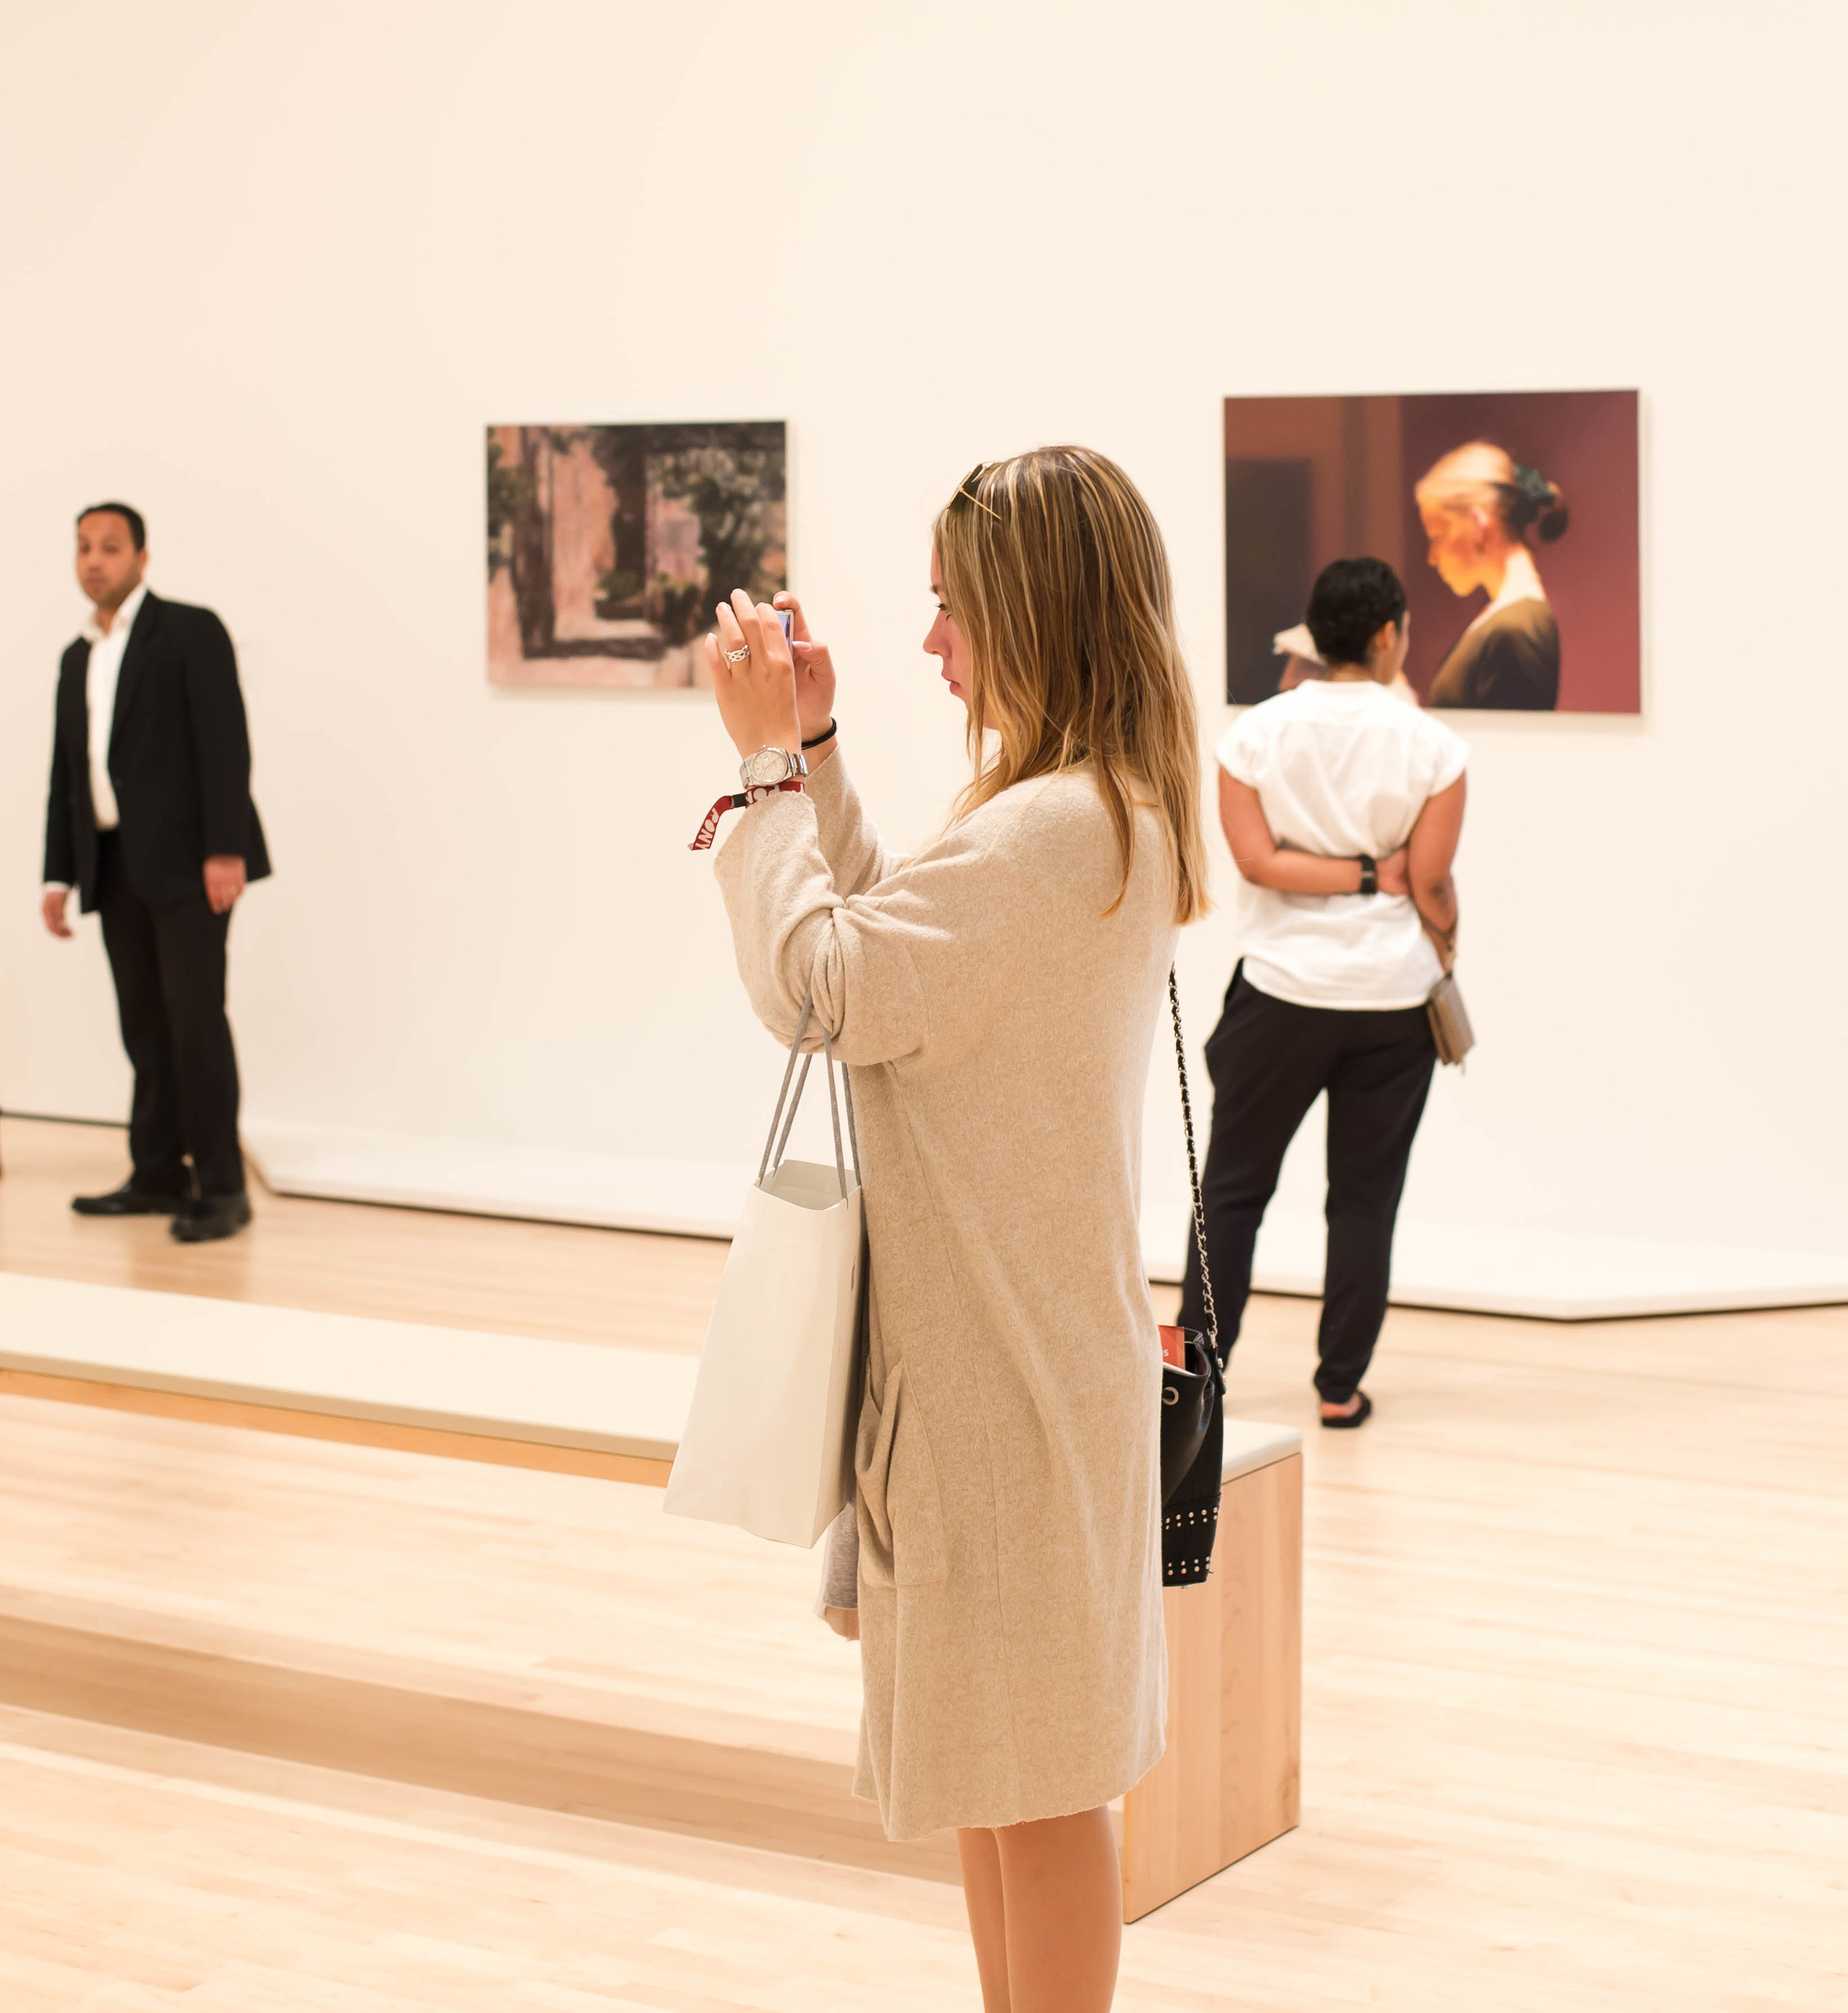 2016_06_03 sf_ca_usa moma woman richter V3.jpg